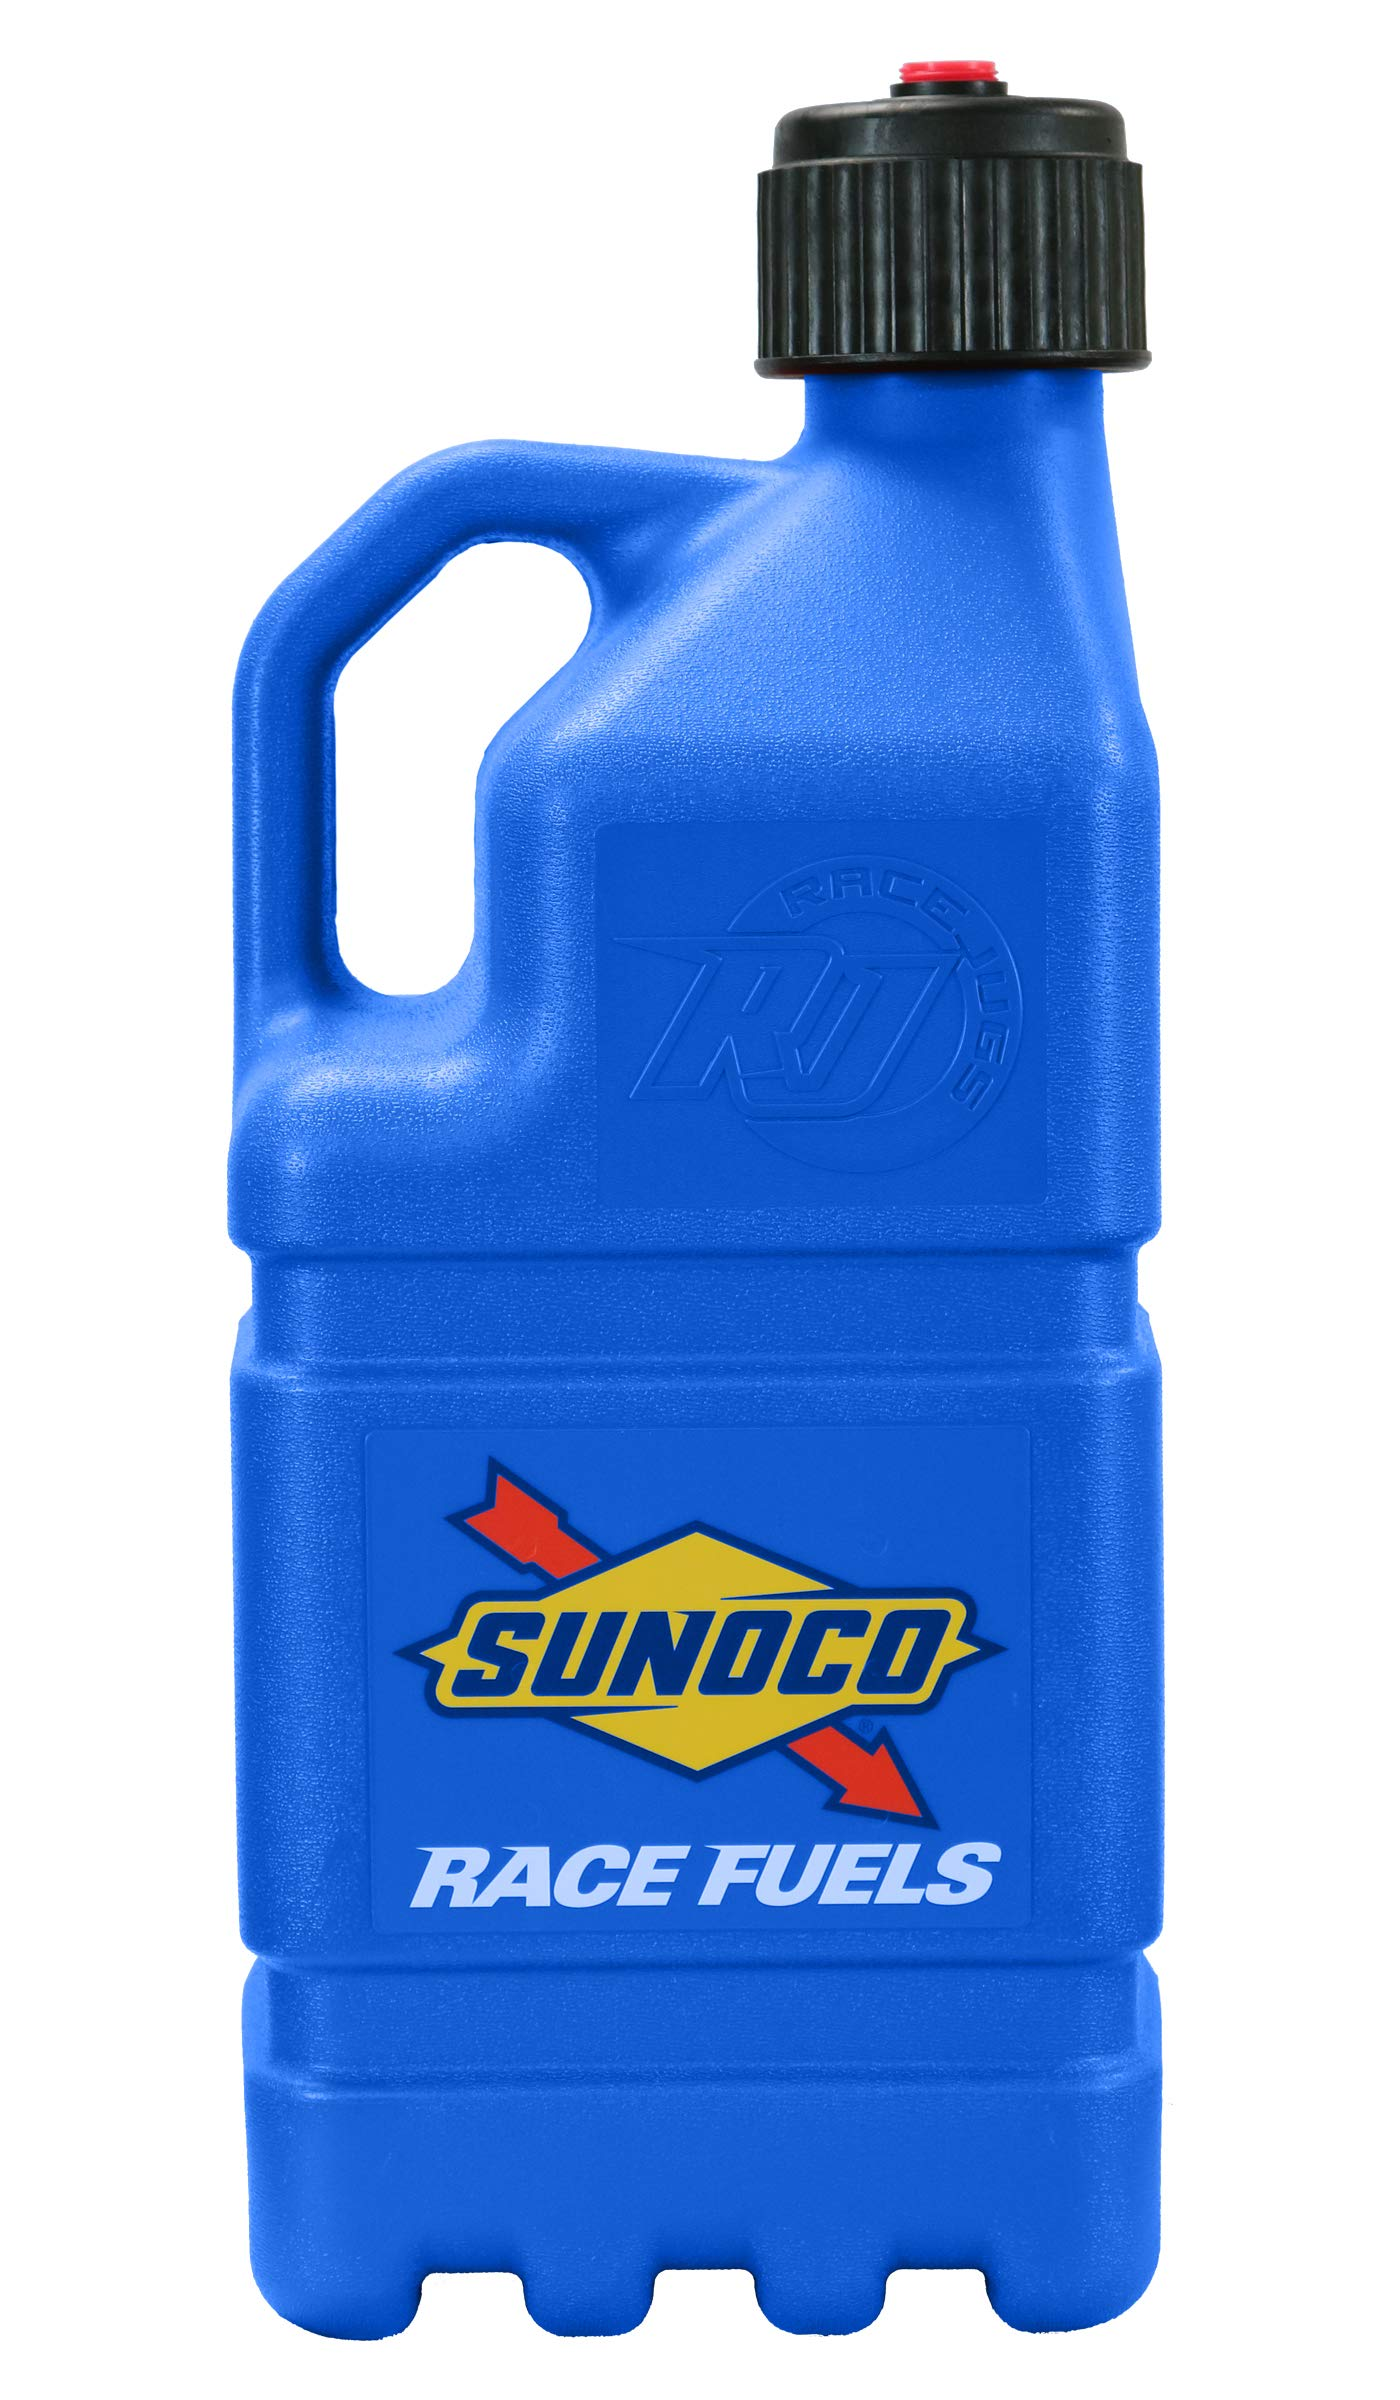 Sunoco Race Jugs 5 Gallon Racing Utility - Blue - Made in The USA R7200BL by Sunoco